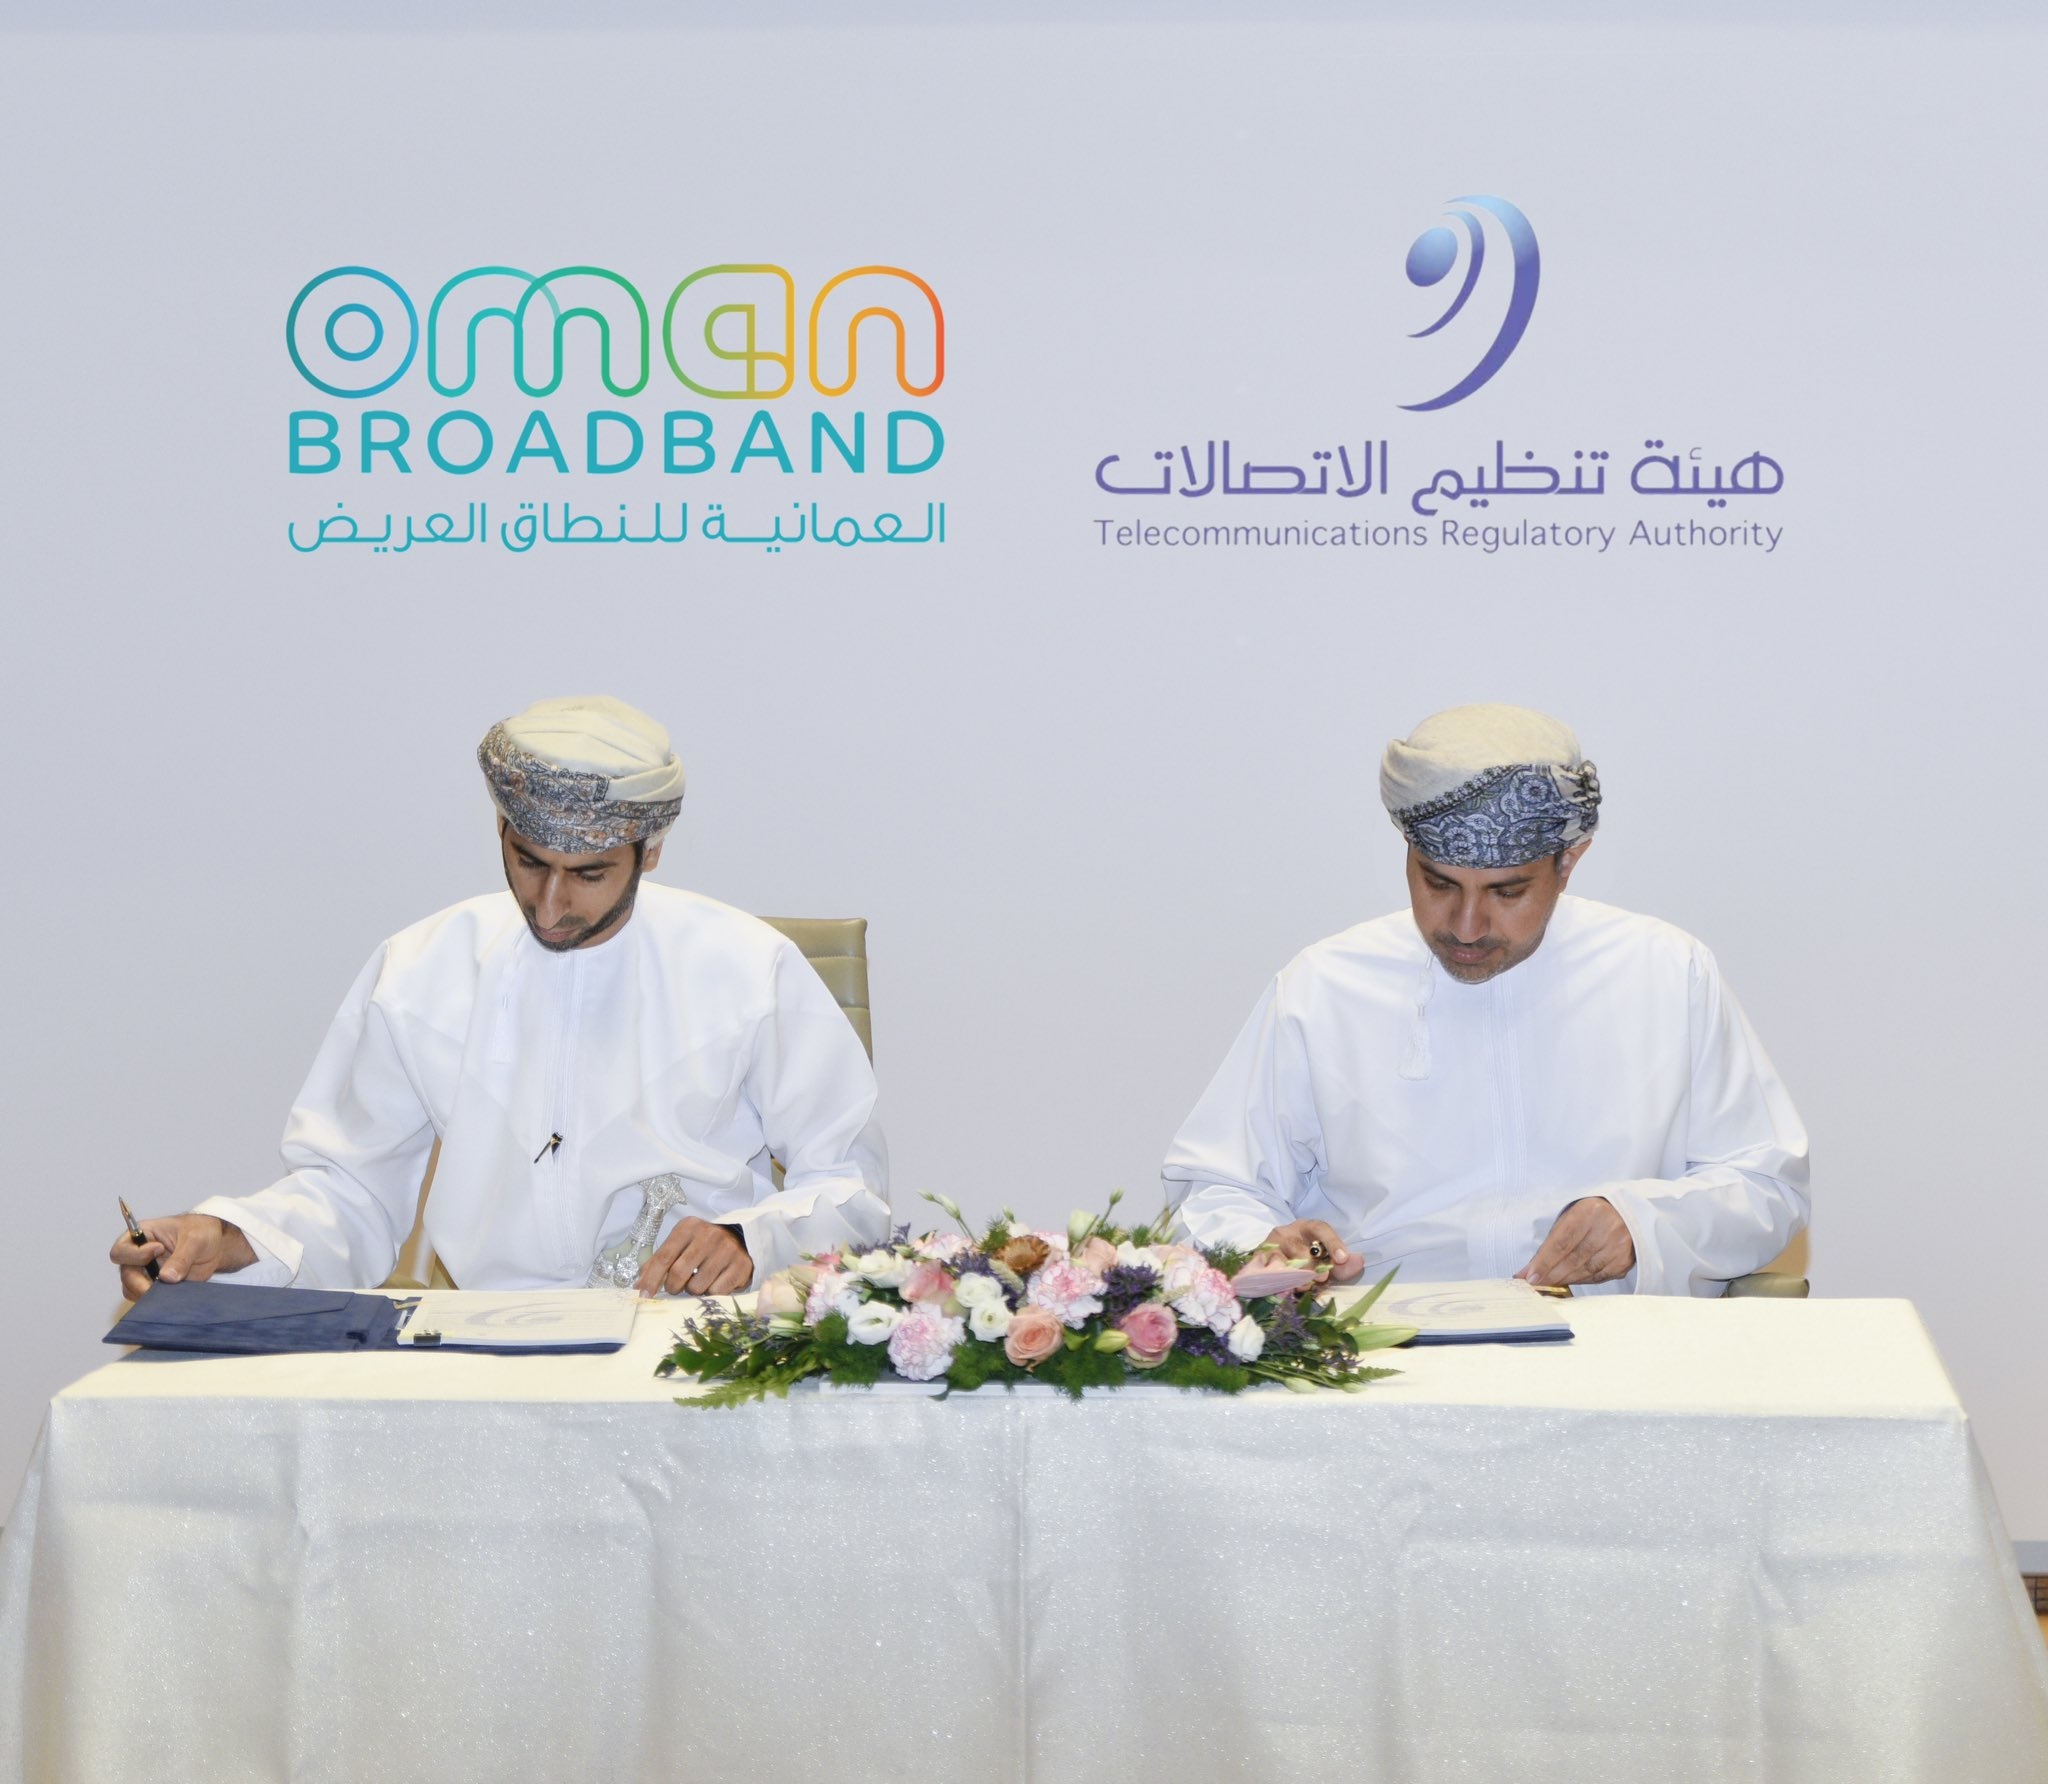 TRA signs agreement with Oman Broadband Company